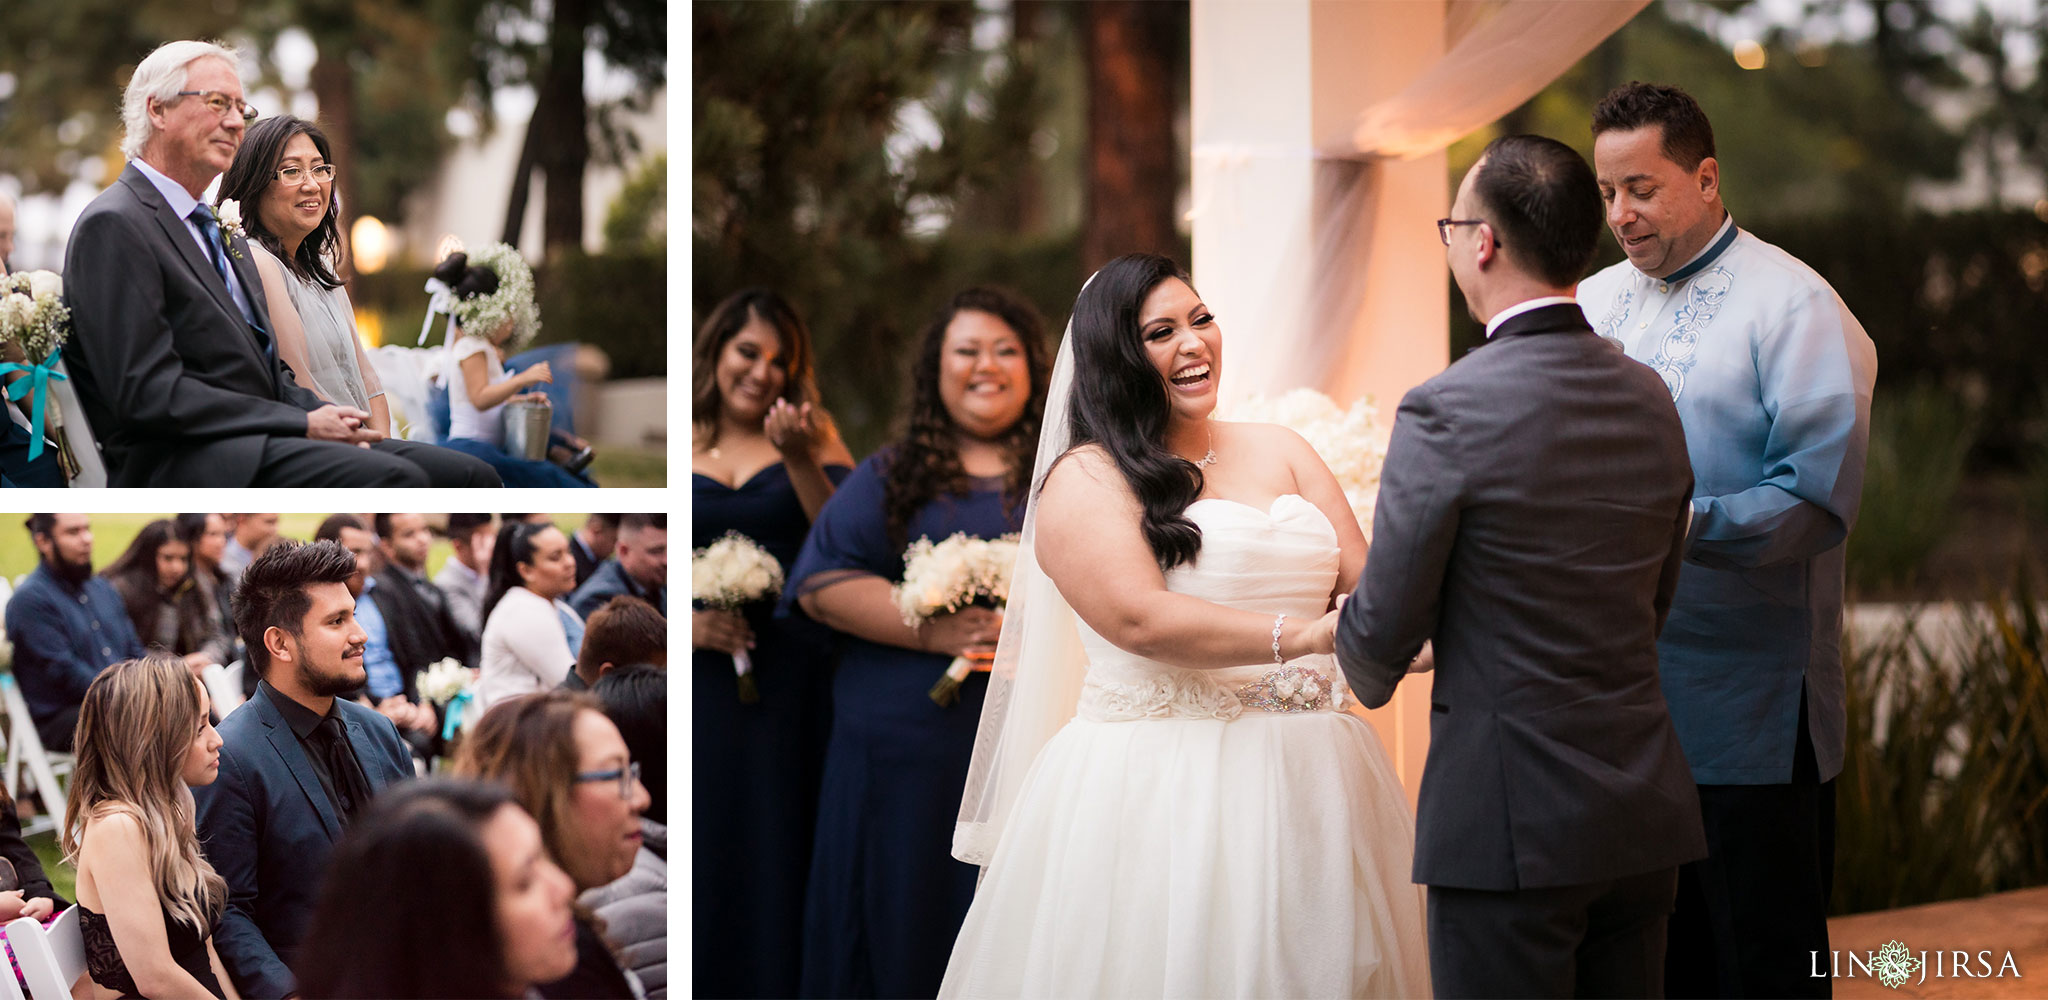 24 turnip rose promenade orange county wedding ceremony photography